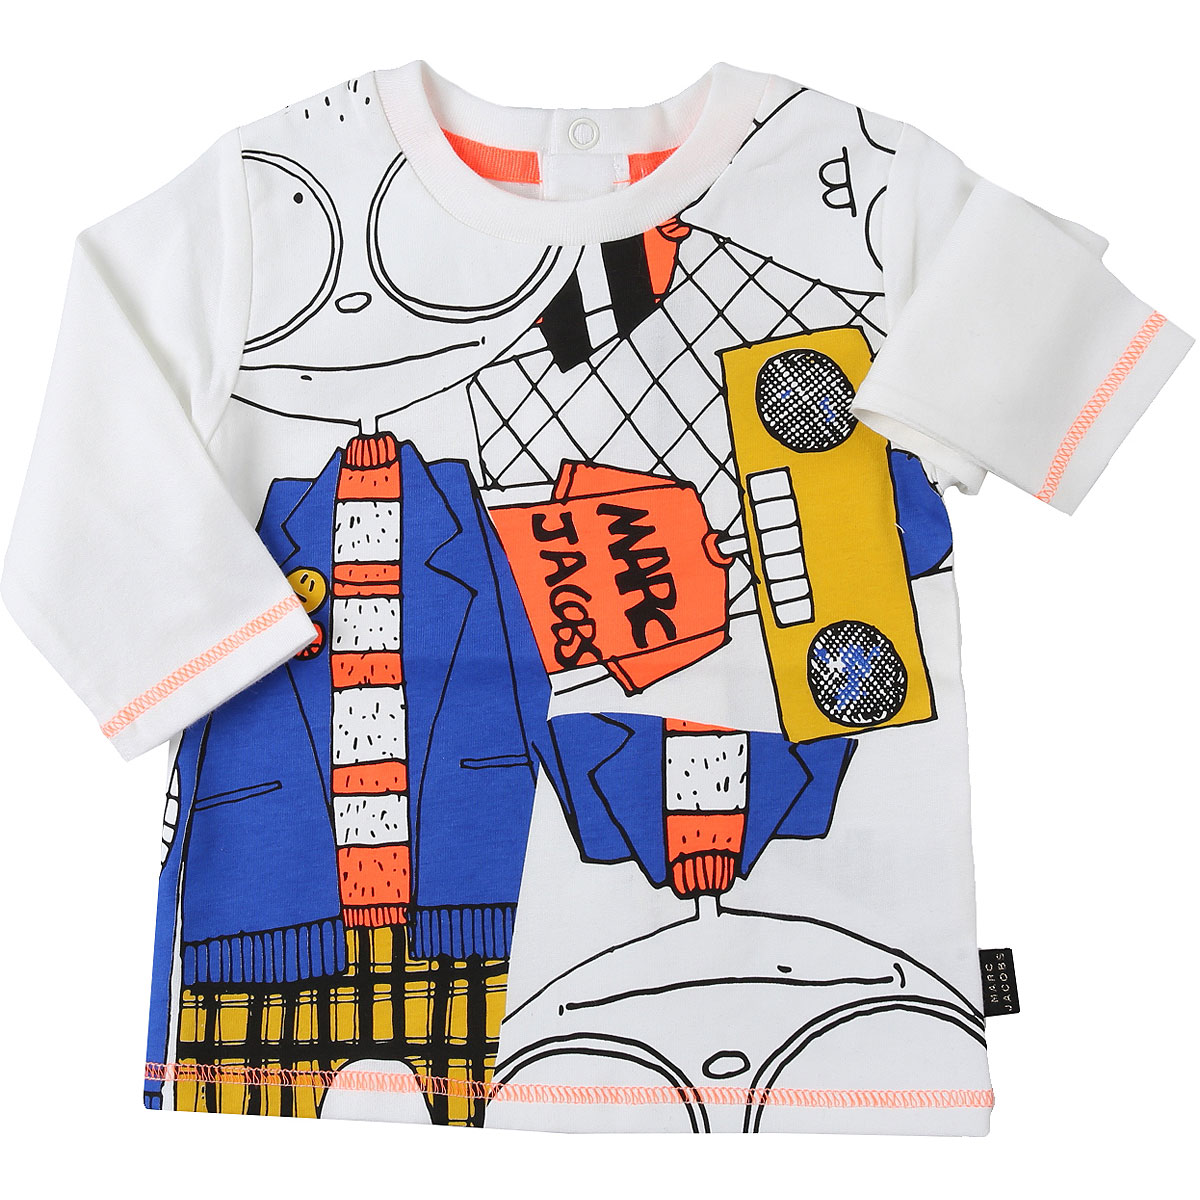 Marc Jacobs Baby T-Shirt for Boys On Sale, White, Cotton, 2019, 12 M 18M 6M 9M